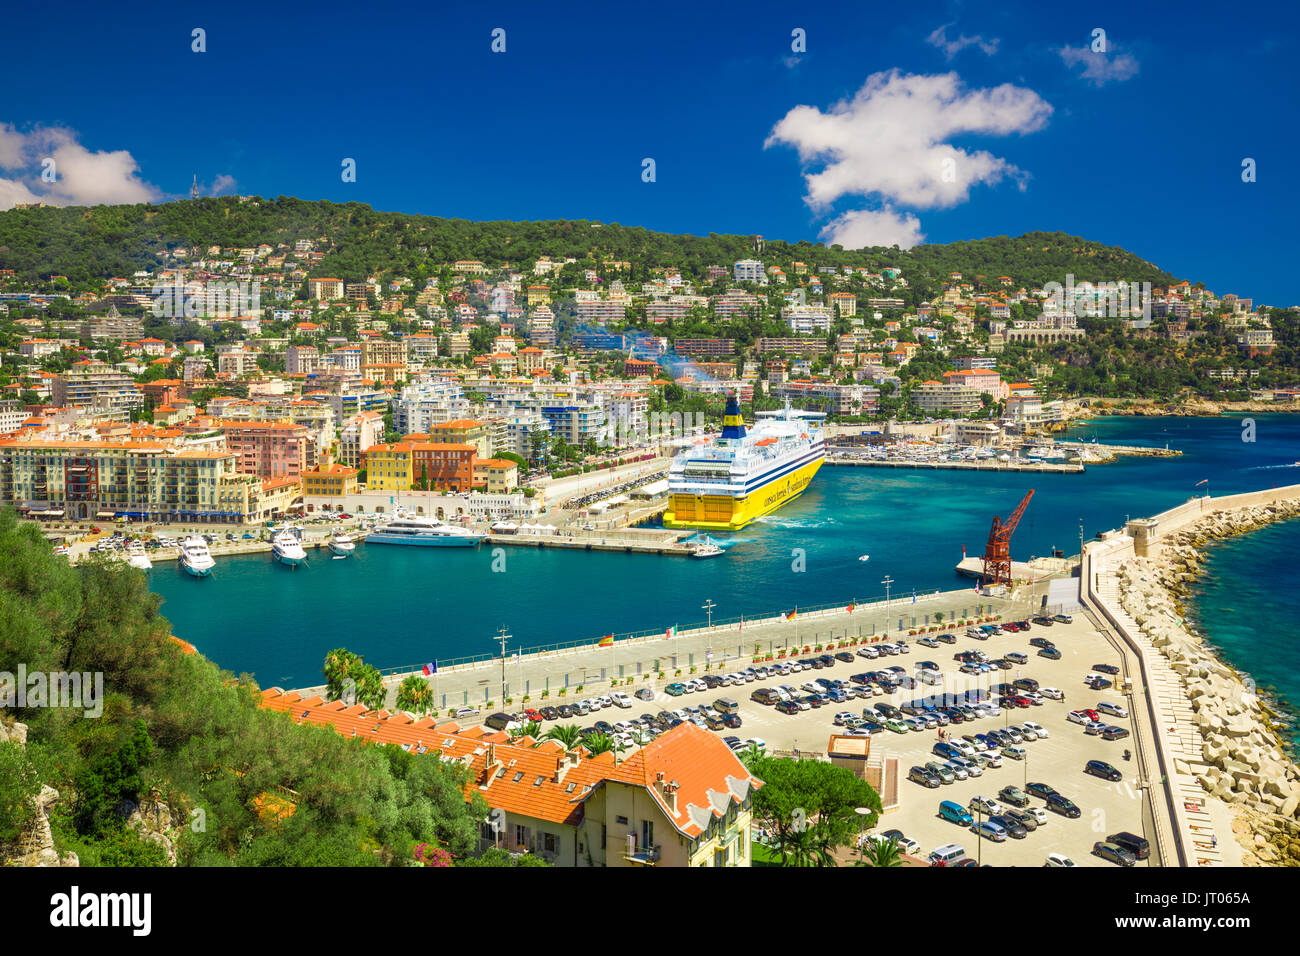 Corsica ferry in the harbor of Nice, French riviera, France, Europe. - Stock Image